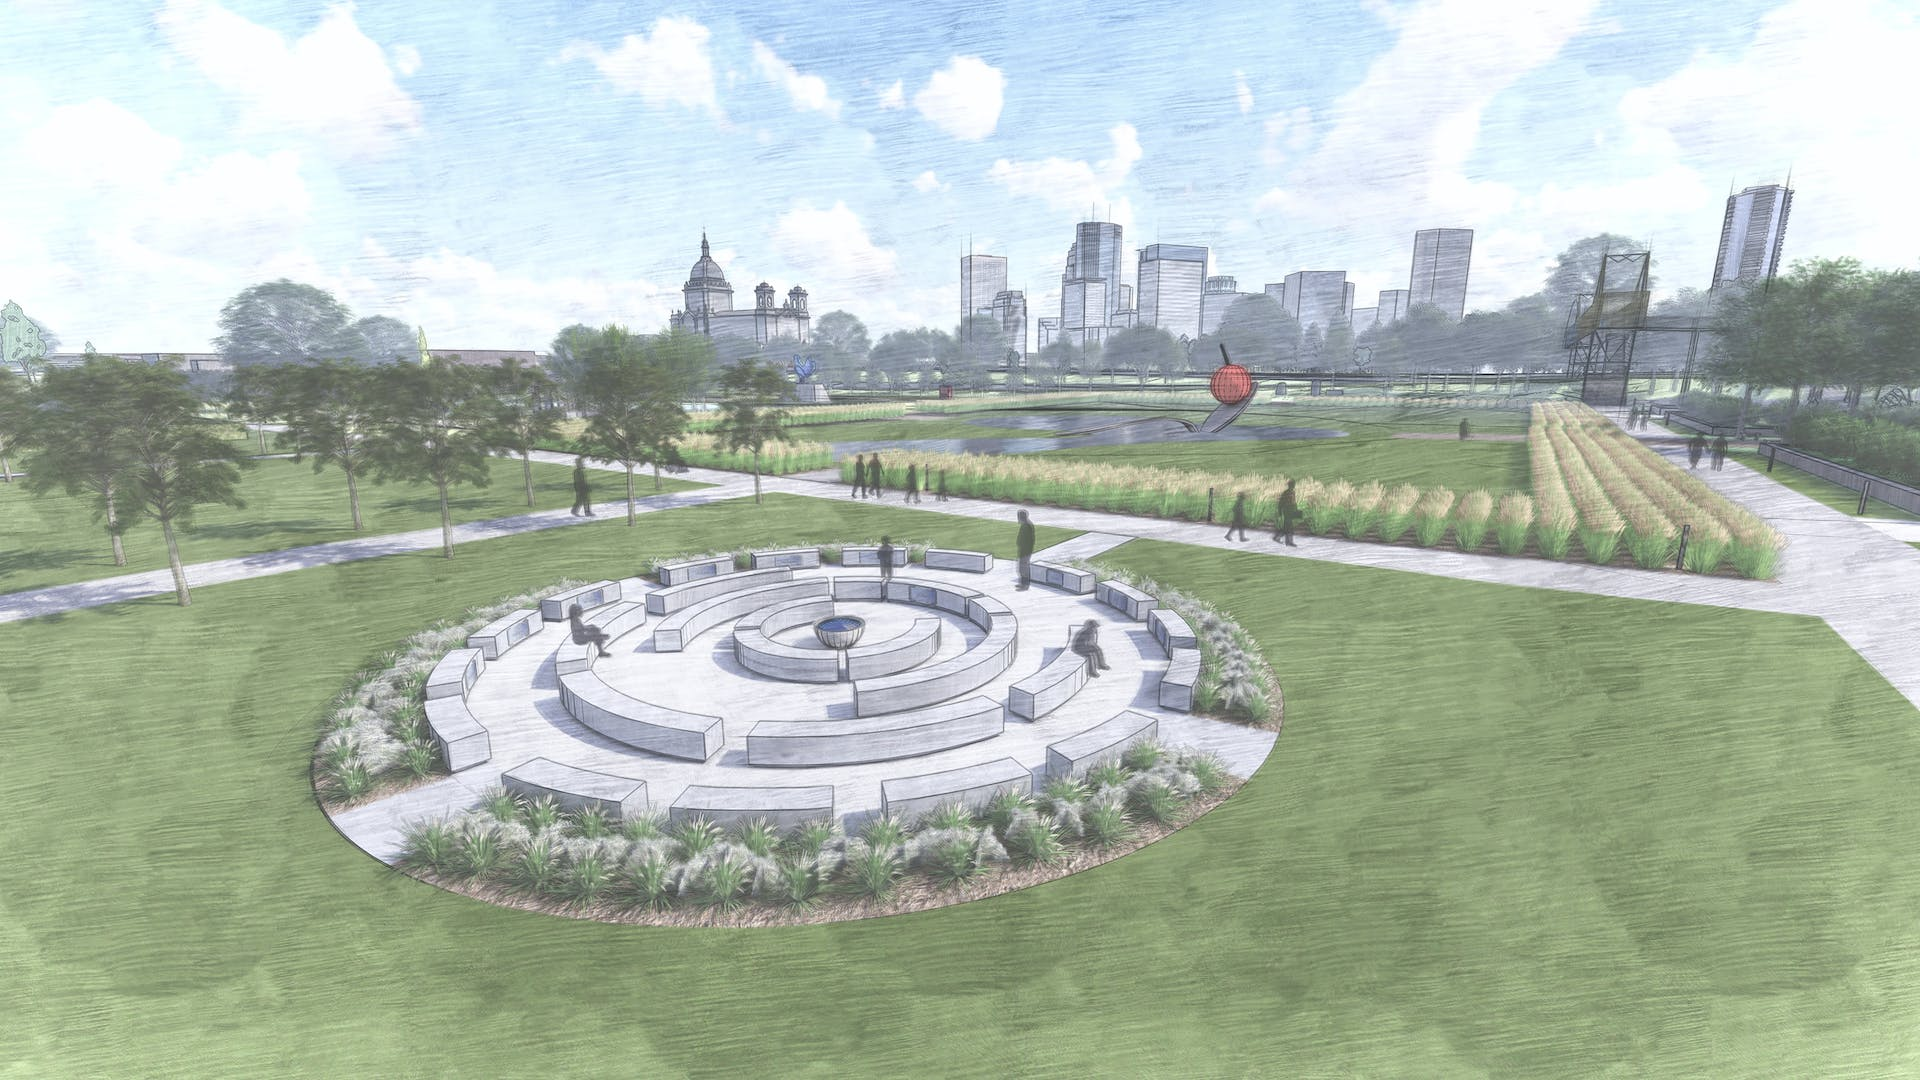 Hand drawn illustration of garden with large round benches and bushes with skyline in distance